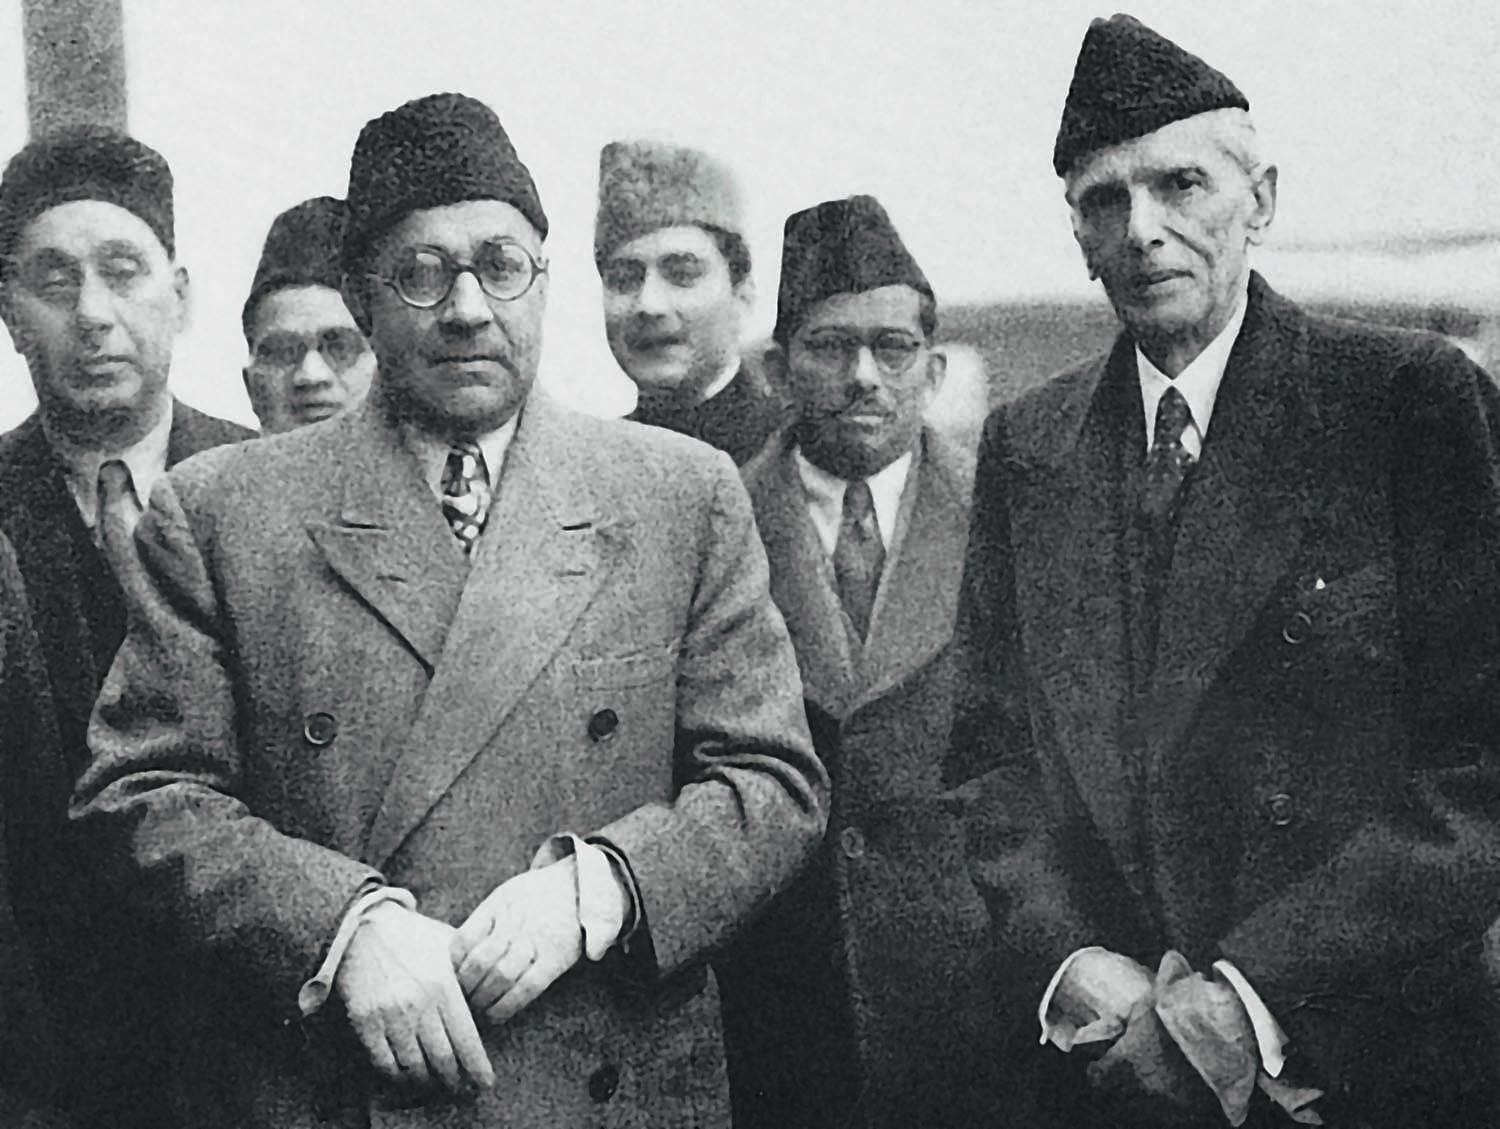 Quaid-i-Azam Mohammad Ali Jinnah (right) and Nawabzada Liaquat Ali Khan (left) during a trip to London in December 1946. In the centre is Altaf Husain, who at the time worked at Dawn Delhi and would later become the first editor of Dawn Karachi. | Photo: The Altaf Husain Family Collection